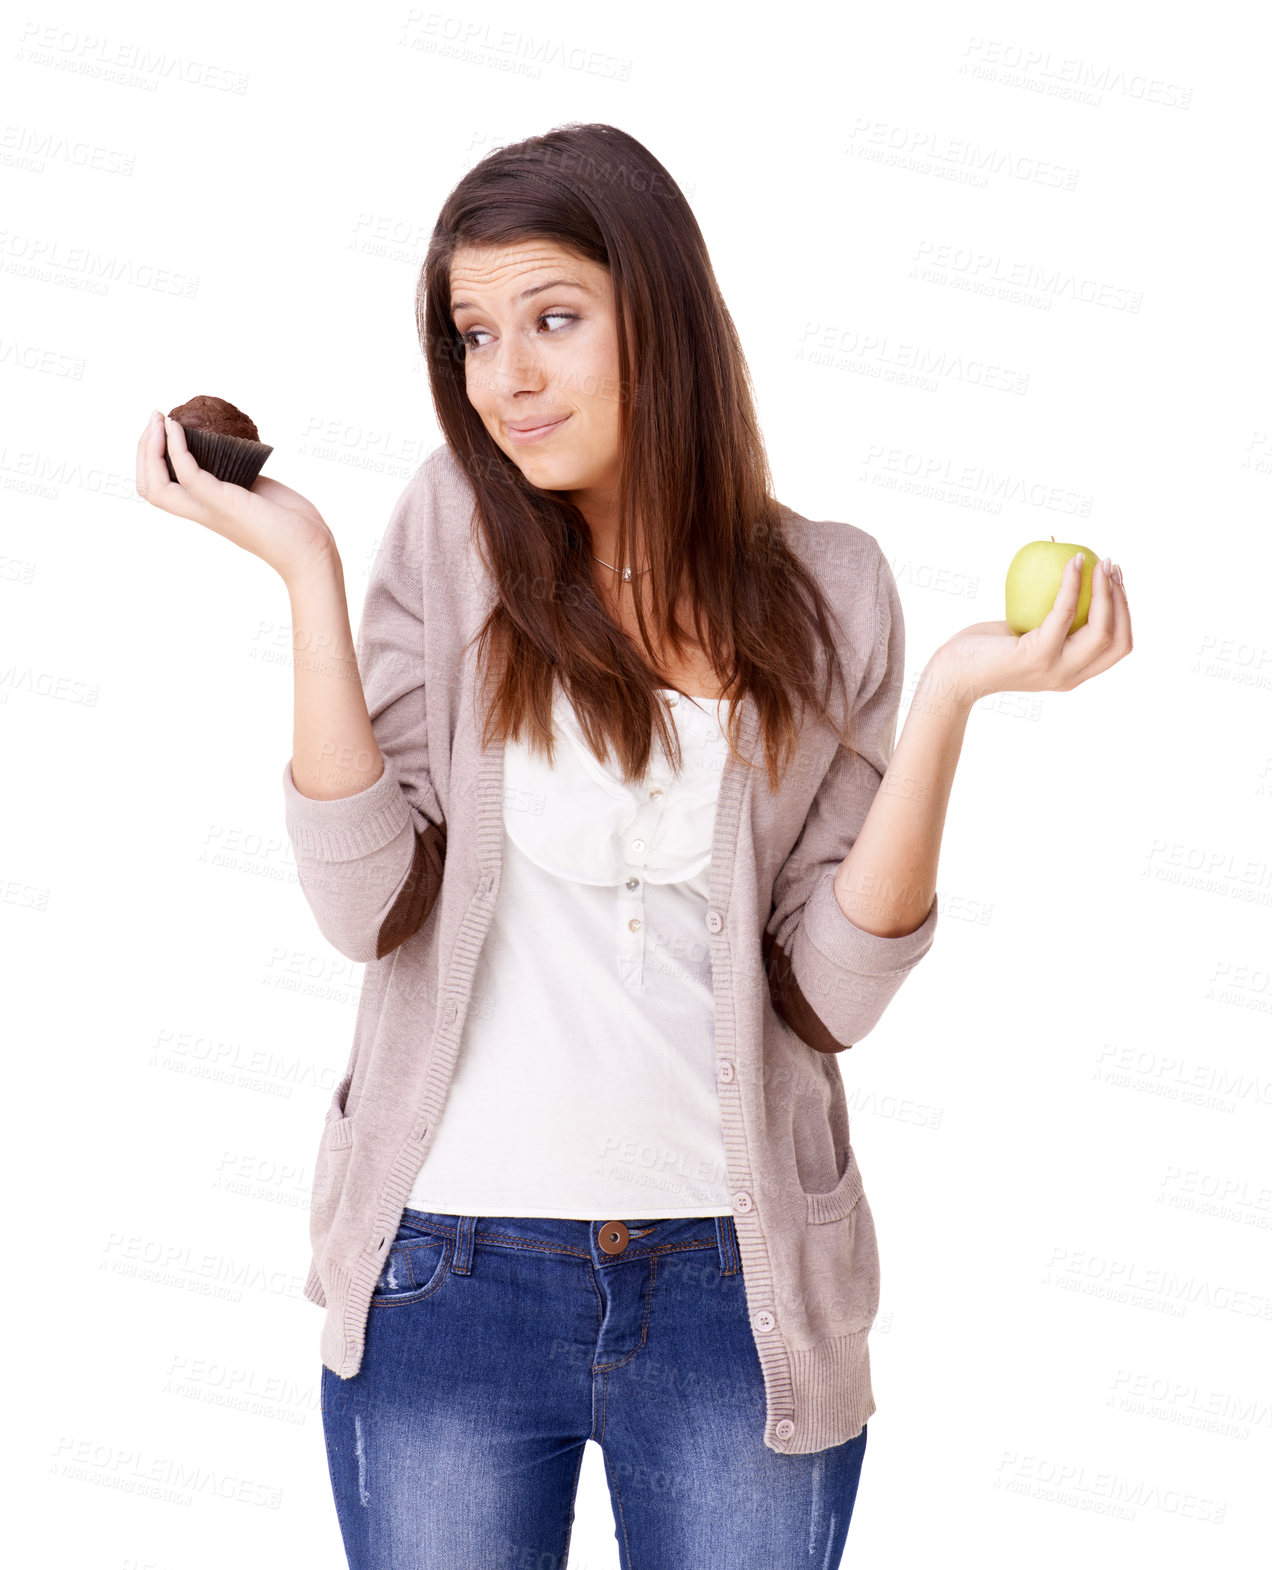 Buy stock photo An attractive young woman choosing between an apple and a muffin